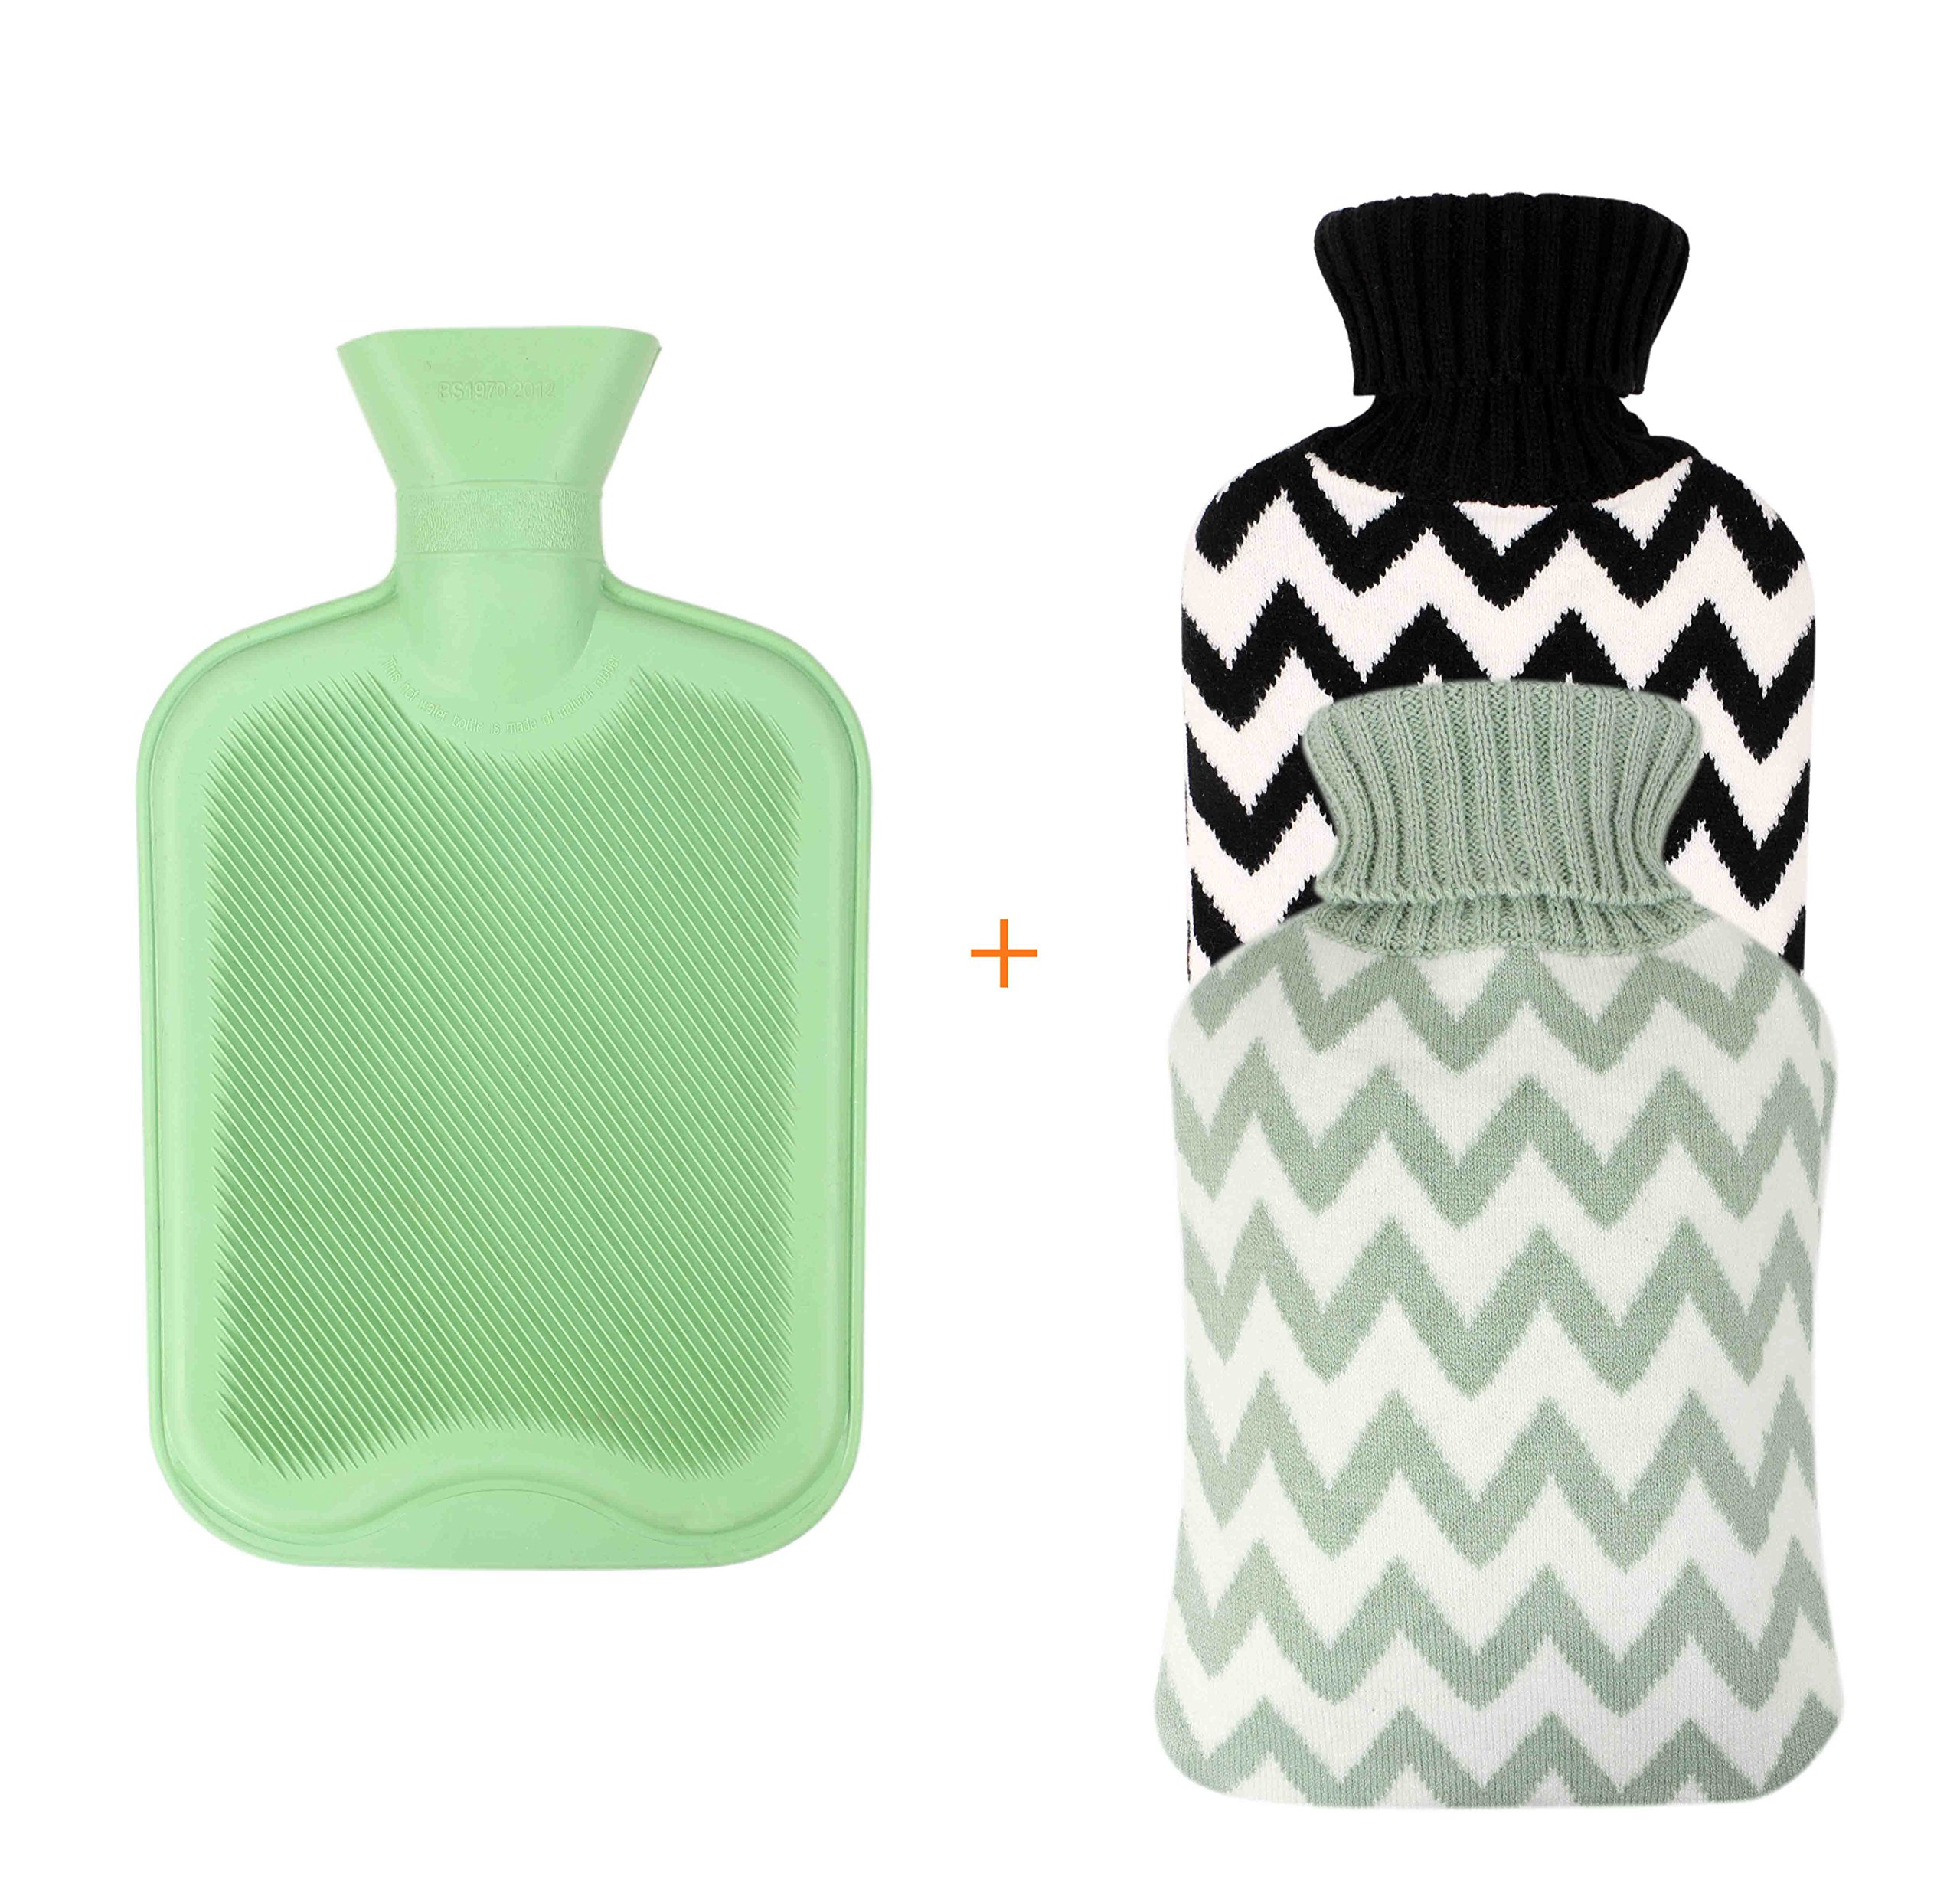 Excel Life Large Size Premium Classic Rubber Hot Water Bottle With 2 Cute Cozy Knit Covers (2 Liter, Black and Mint green stripe) by EXCEL LIFE